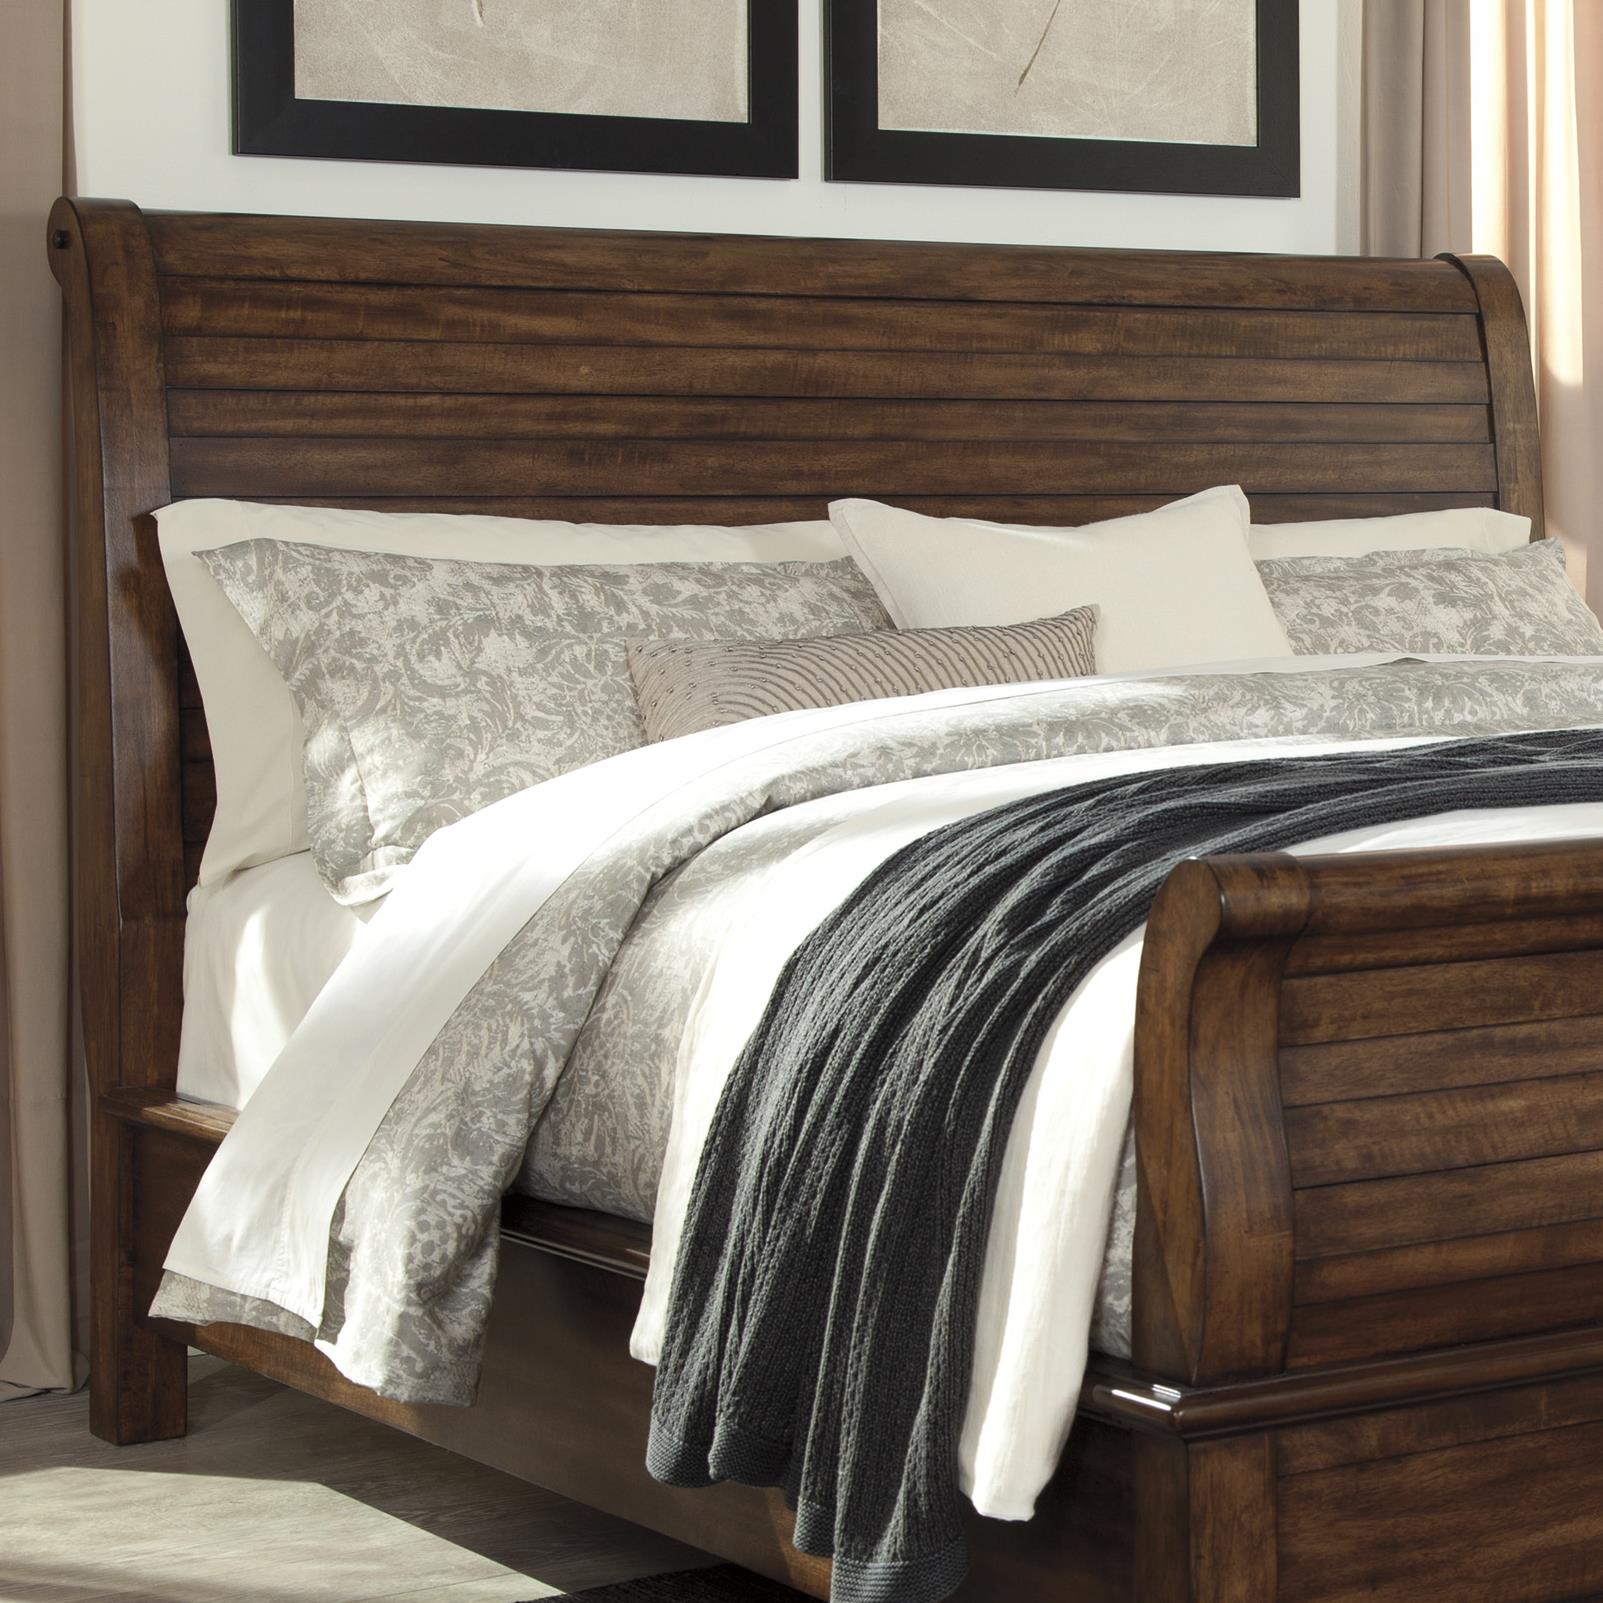 Signature Design by Ashley Chaddinfield King/Cal King Sleigh Headboard - Item Number: B648-78